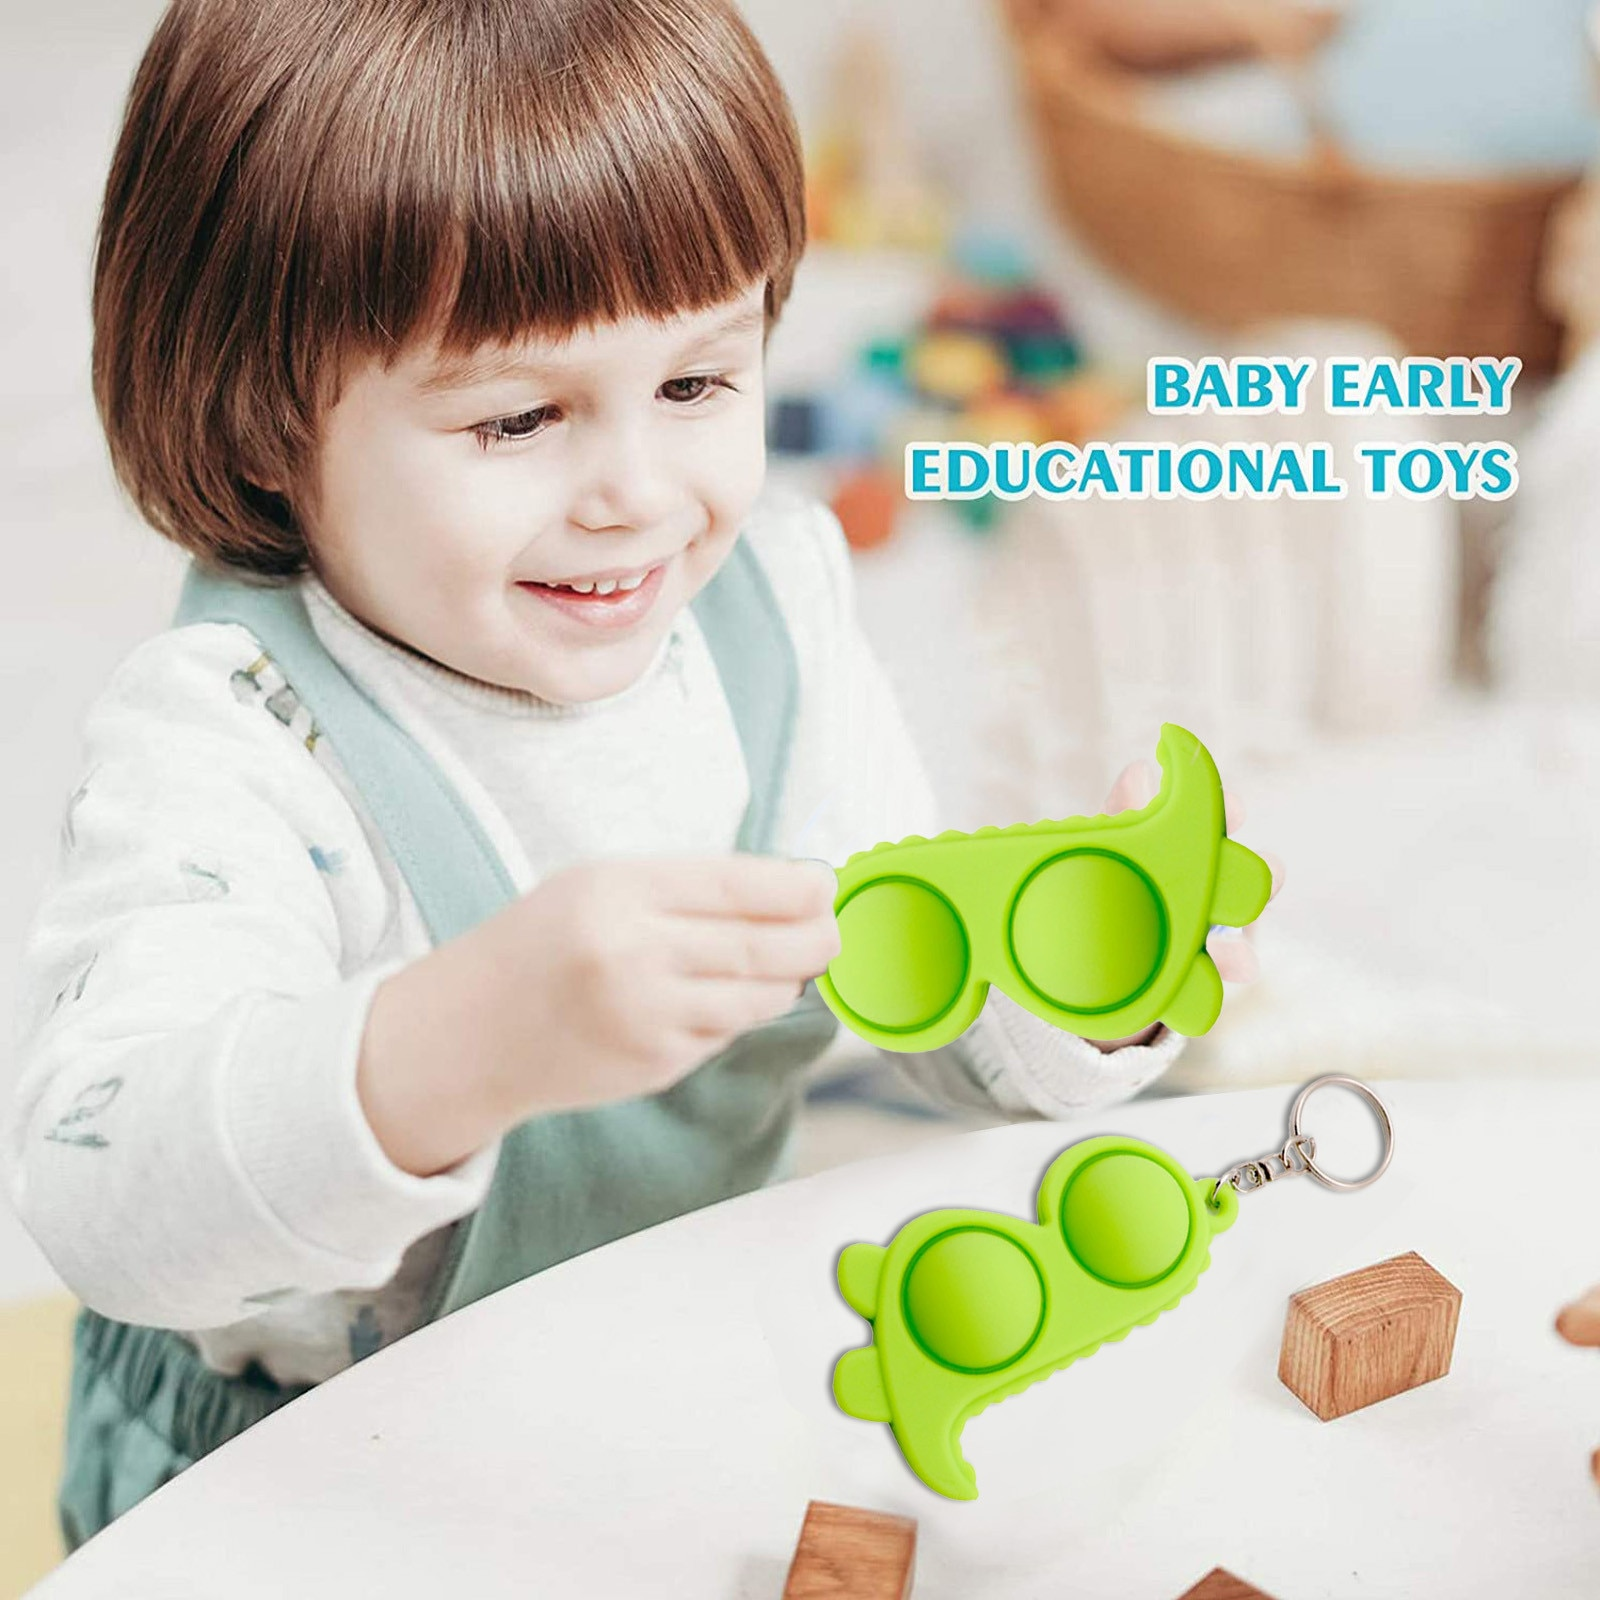 H4f207ad484284212bf948e0b9cf8326bW - #AA Simple Dimple Fidget Toys Adult Children Antistress Hand Toys Pressure Reliever Board Controller Reliver Stress Toys